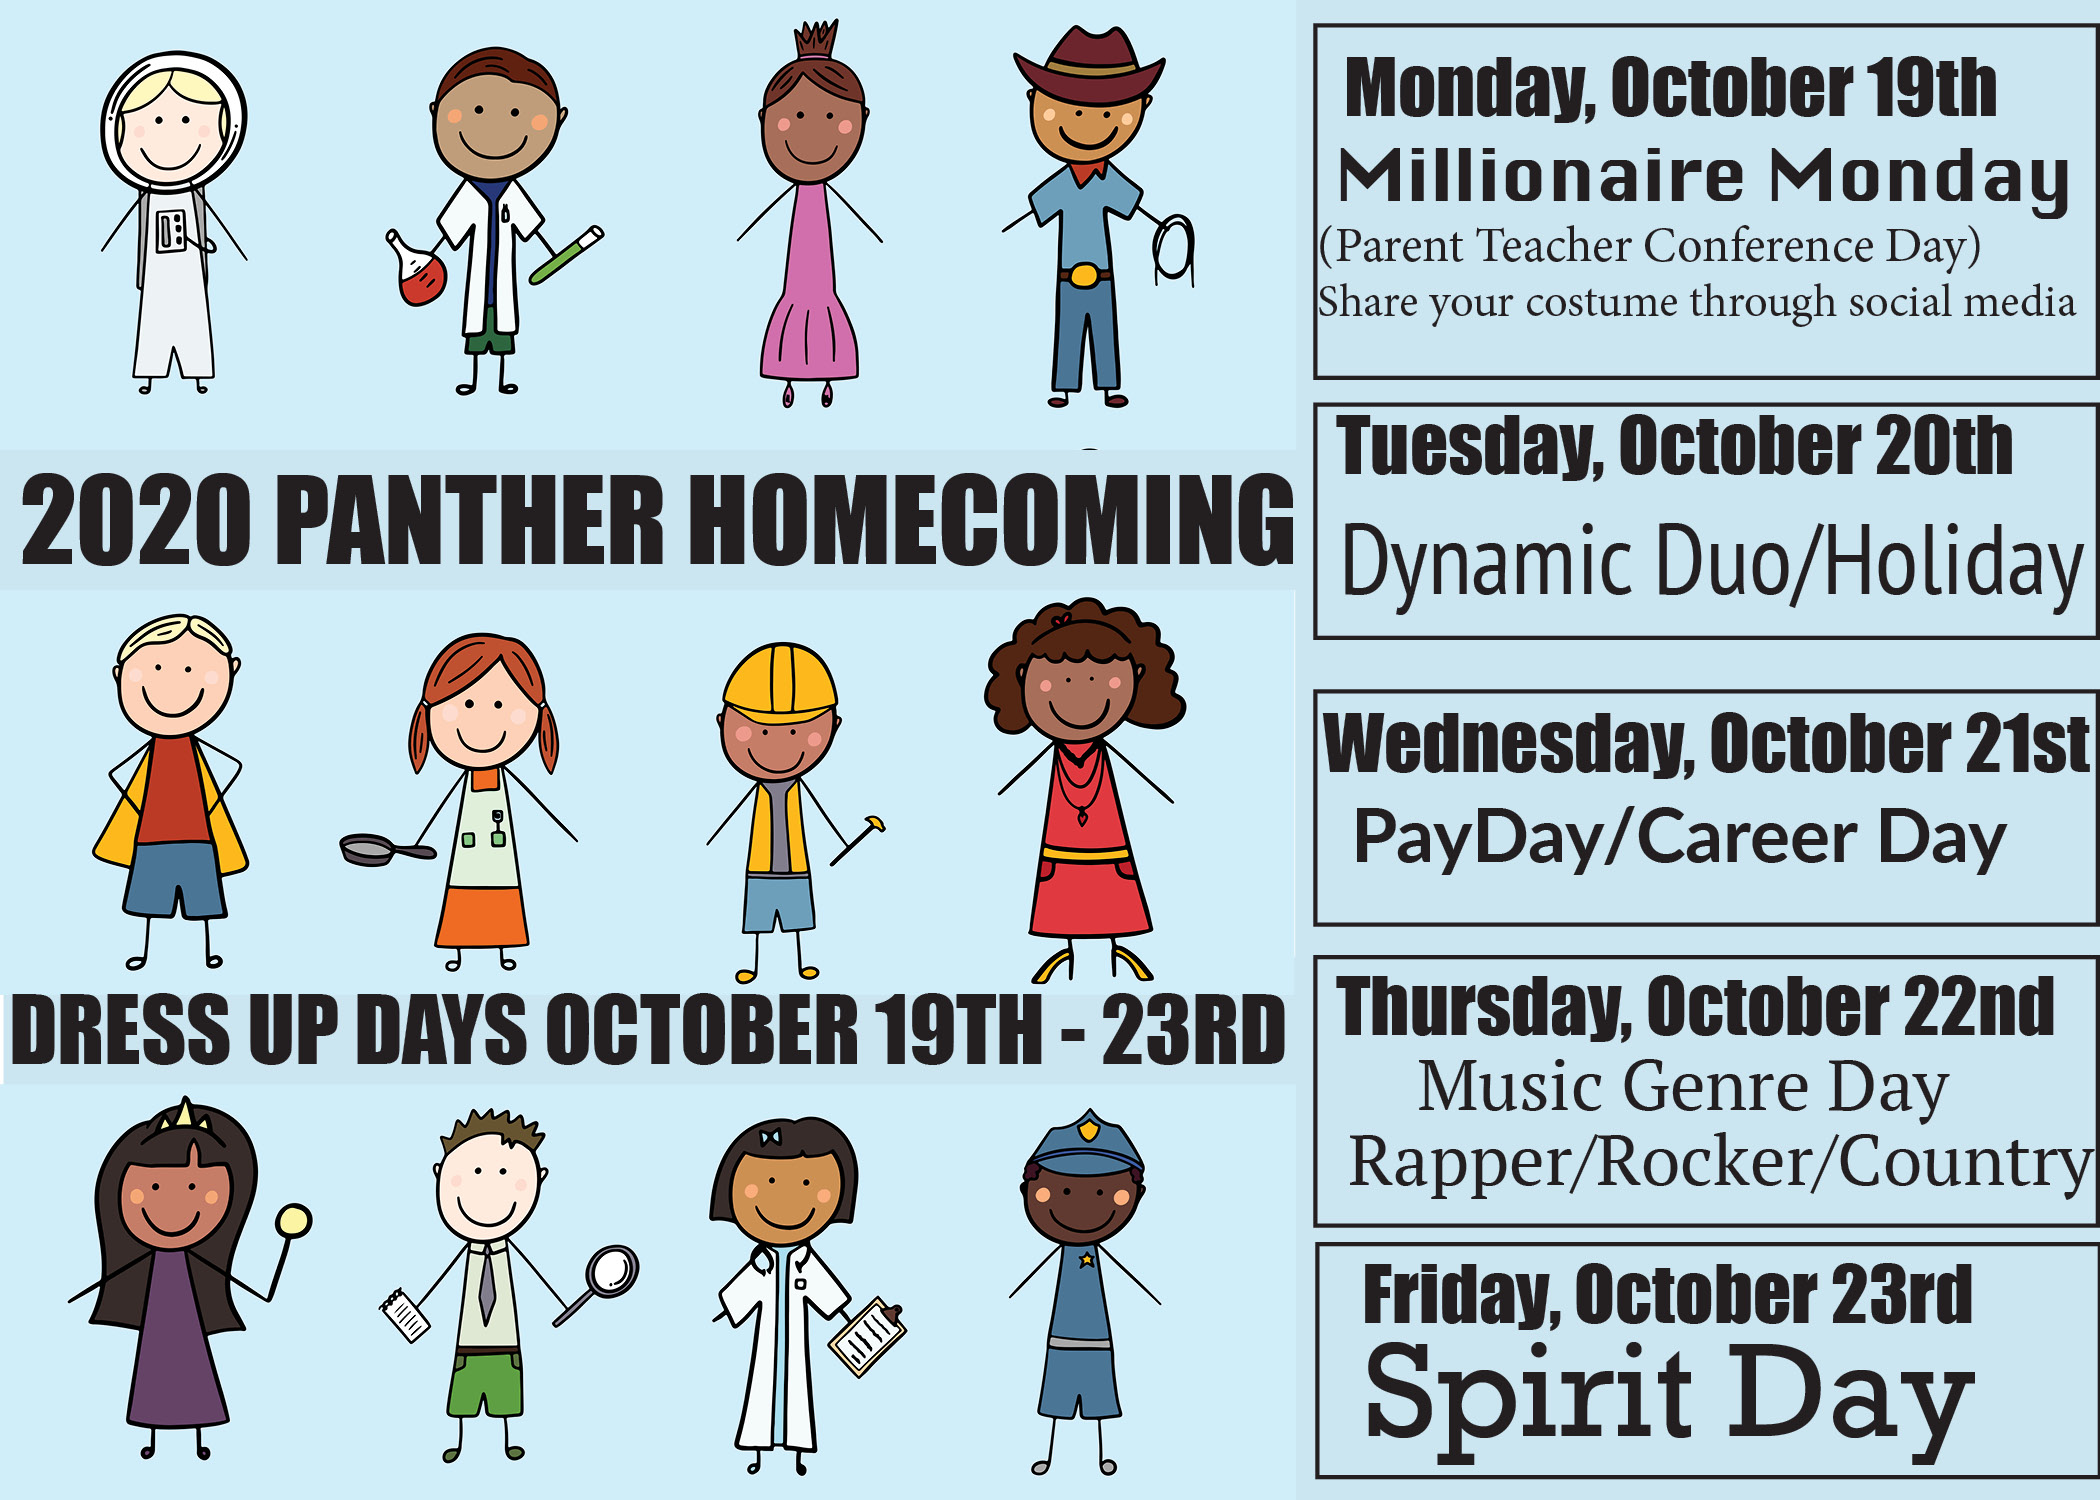 This is a flyer about the dress up days of Homecoming Week.